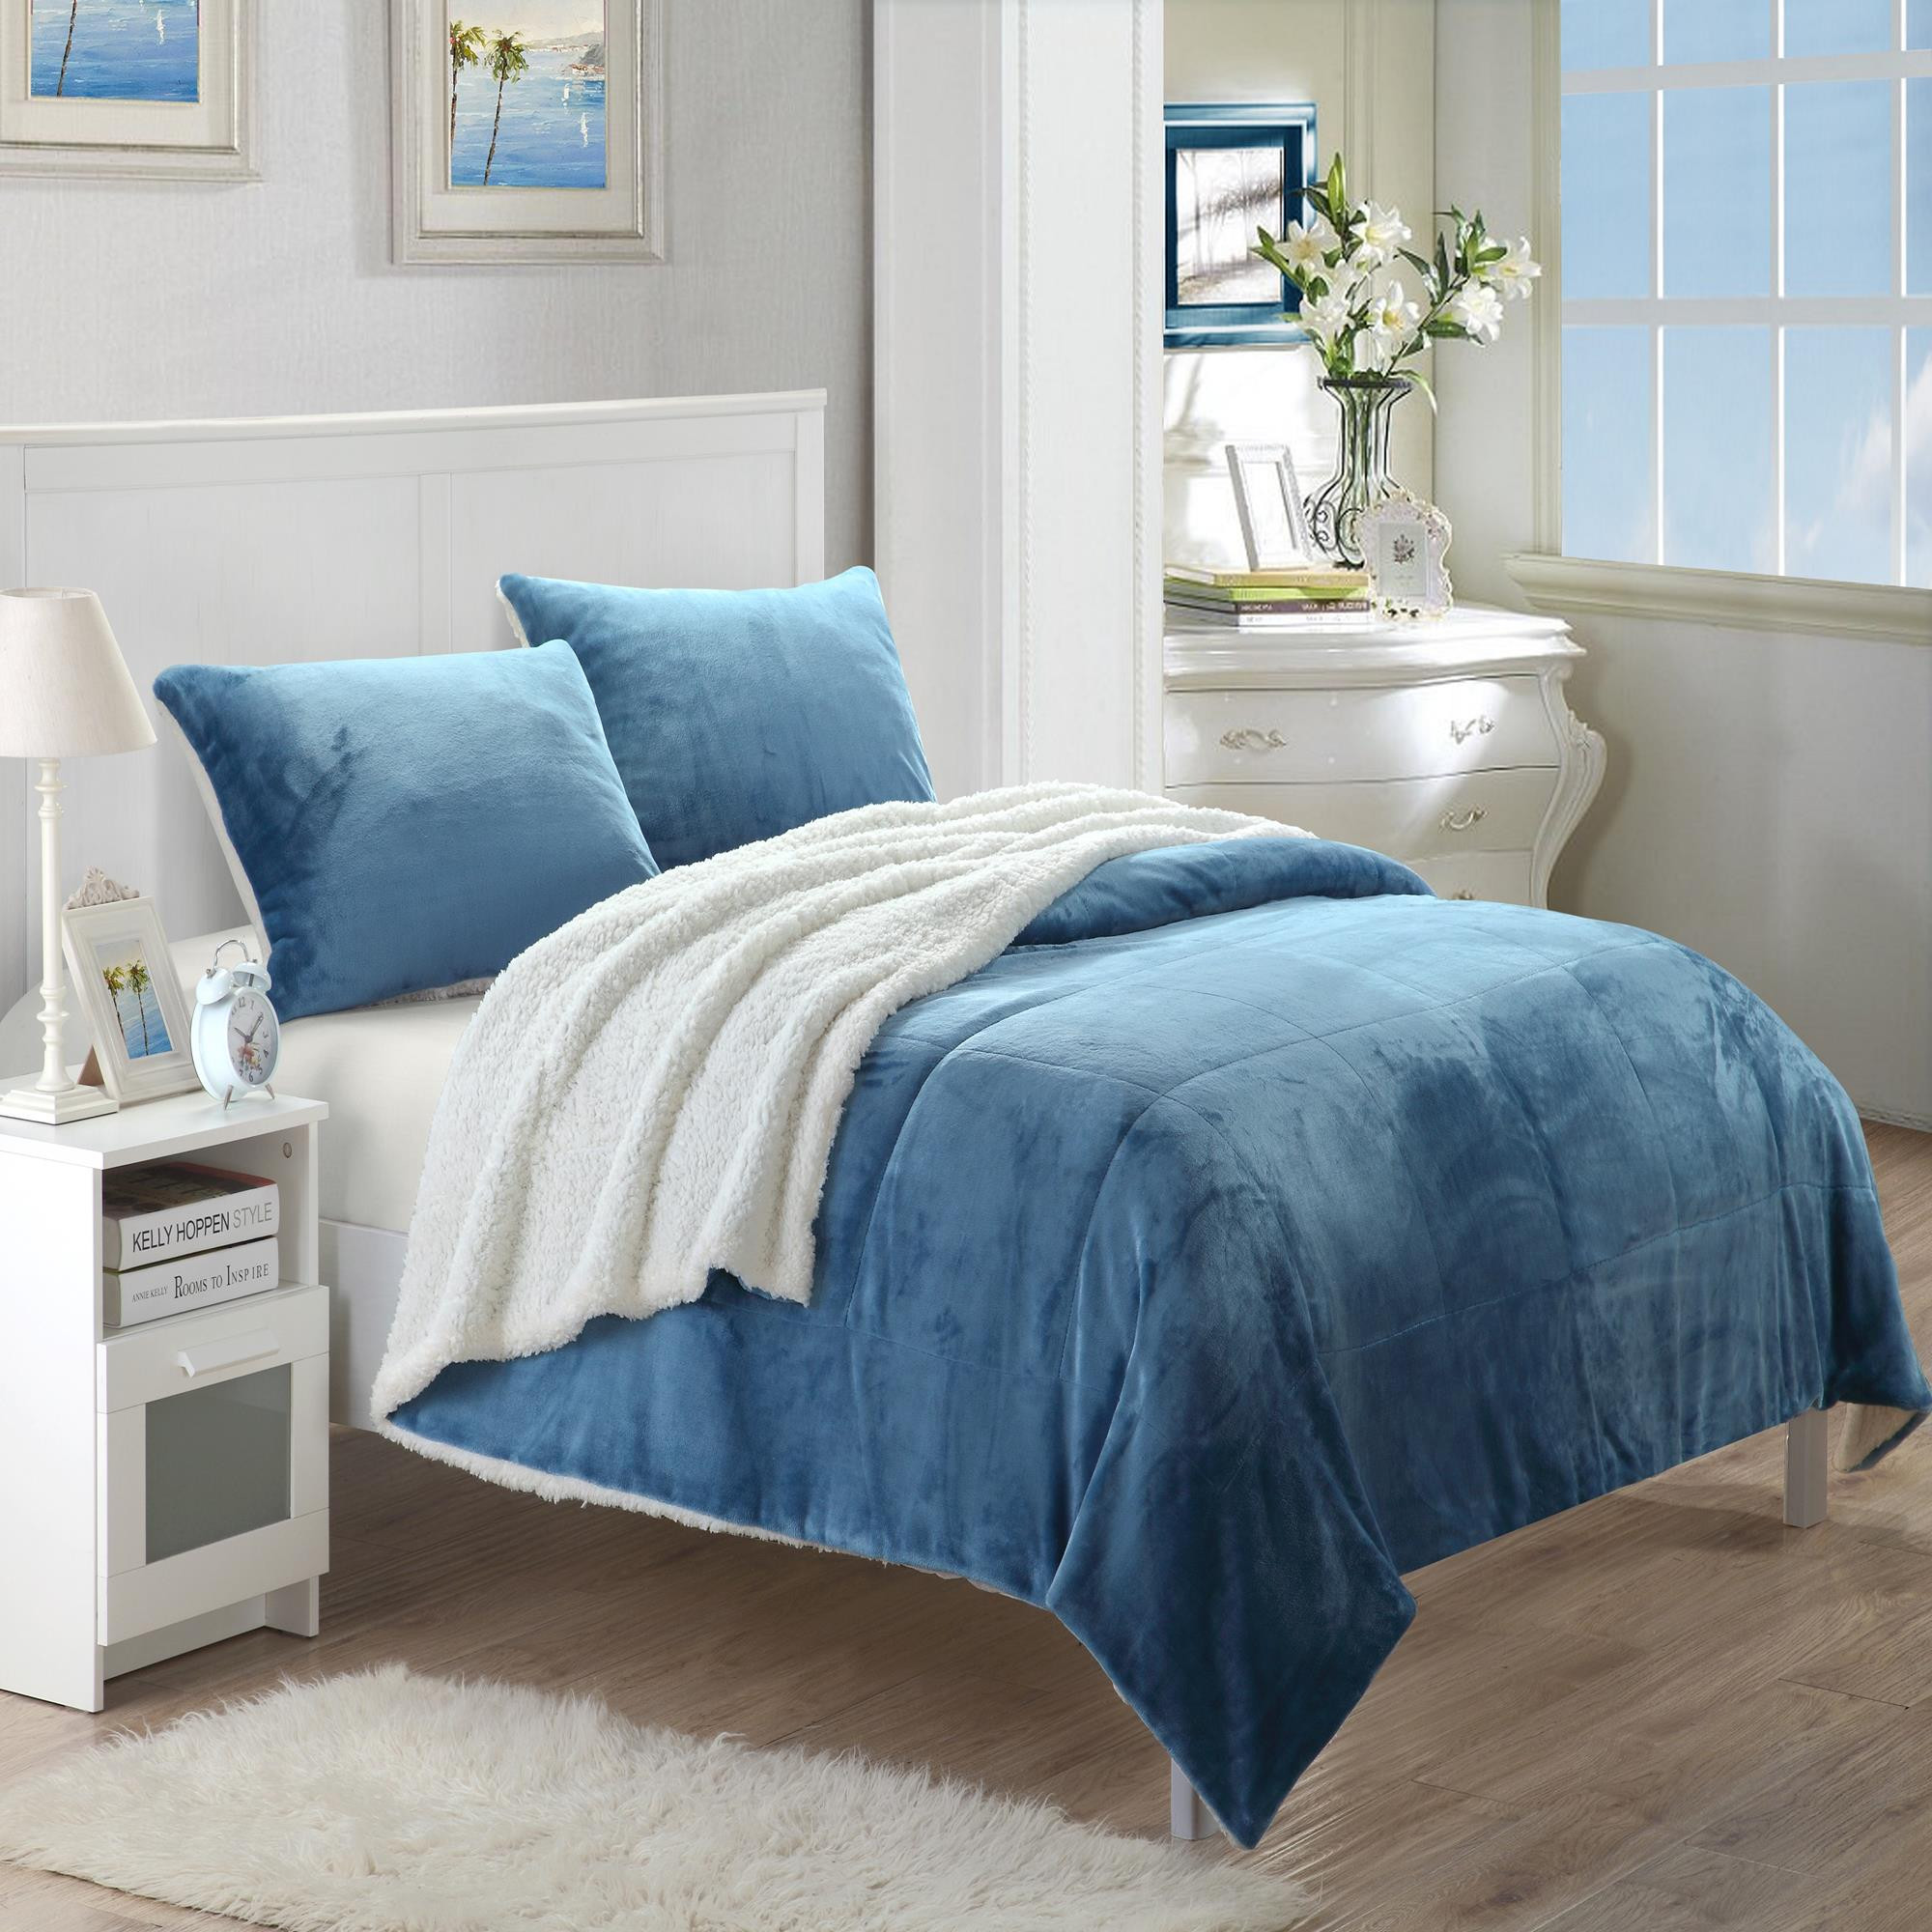 Evie Plush Microsuede Sherpa Lined Blue 3 Piece Blanket & Shams Set